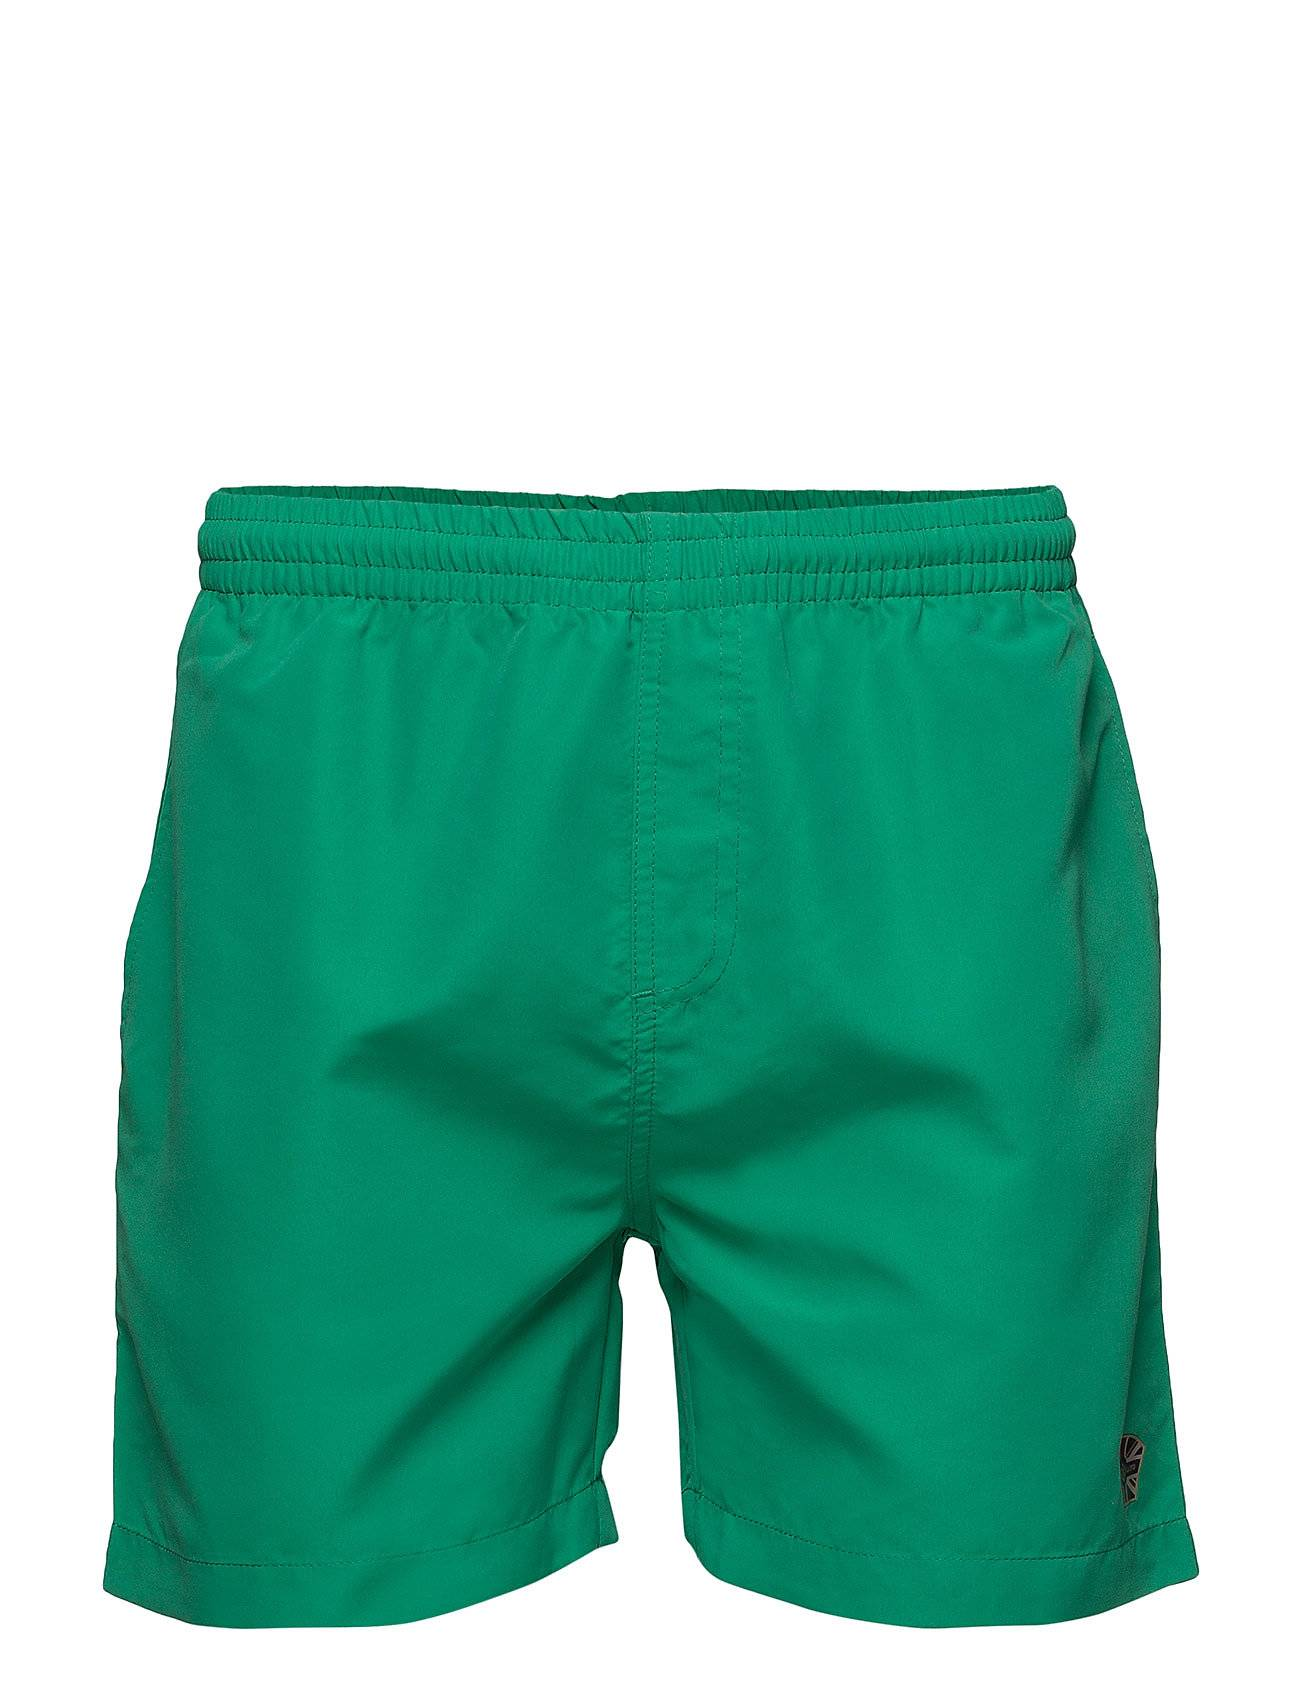 Henri Lloyd Becketts Branded Swim Short